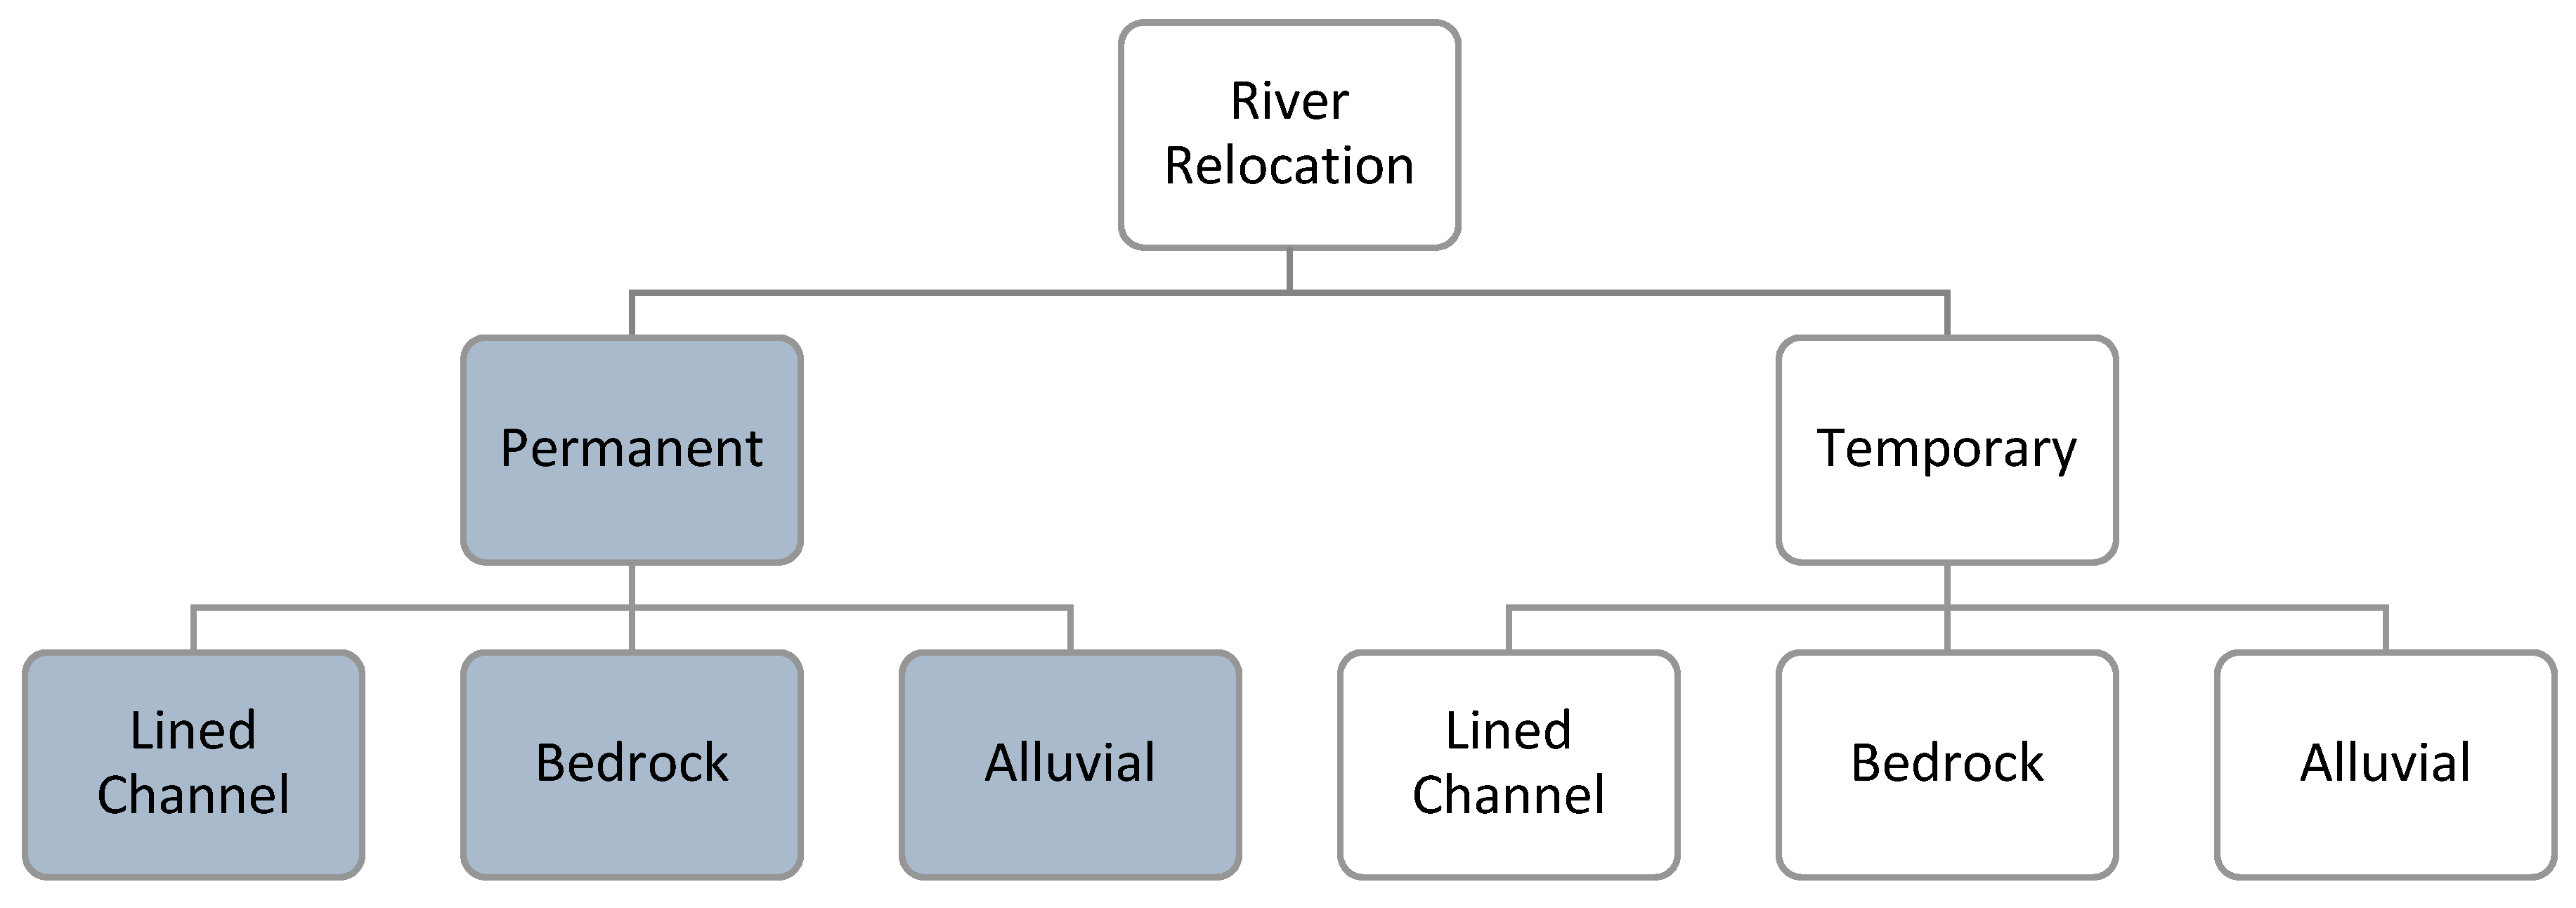 Water Free Full Text River Channel Relocation Problems And Diagram Of The Parts John P Grace Memorial Bridge 10 01360 G003